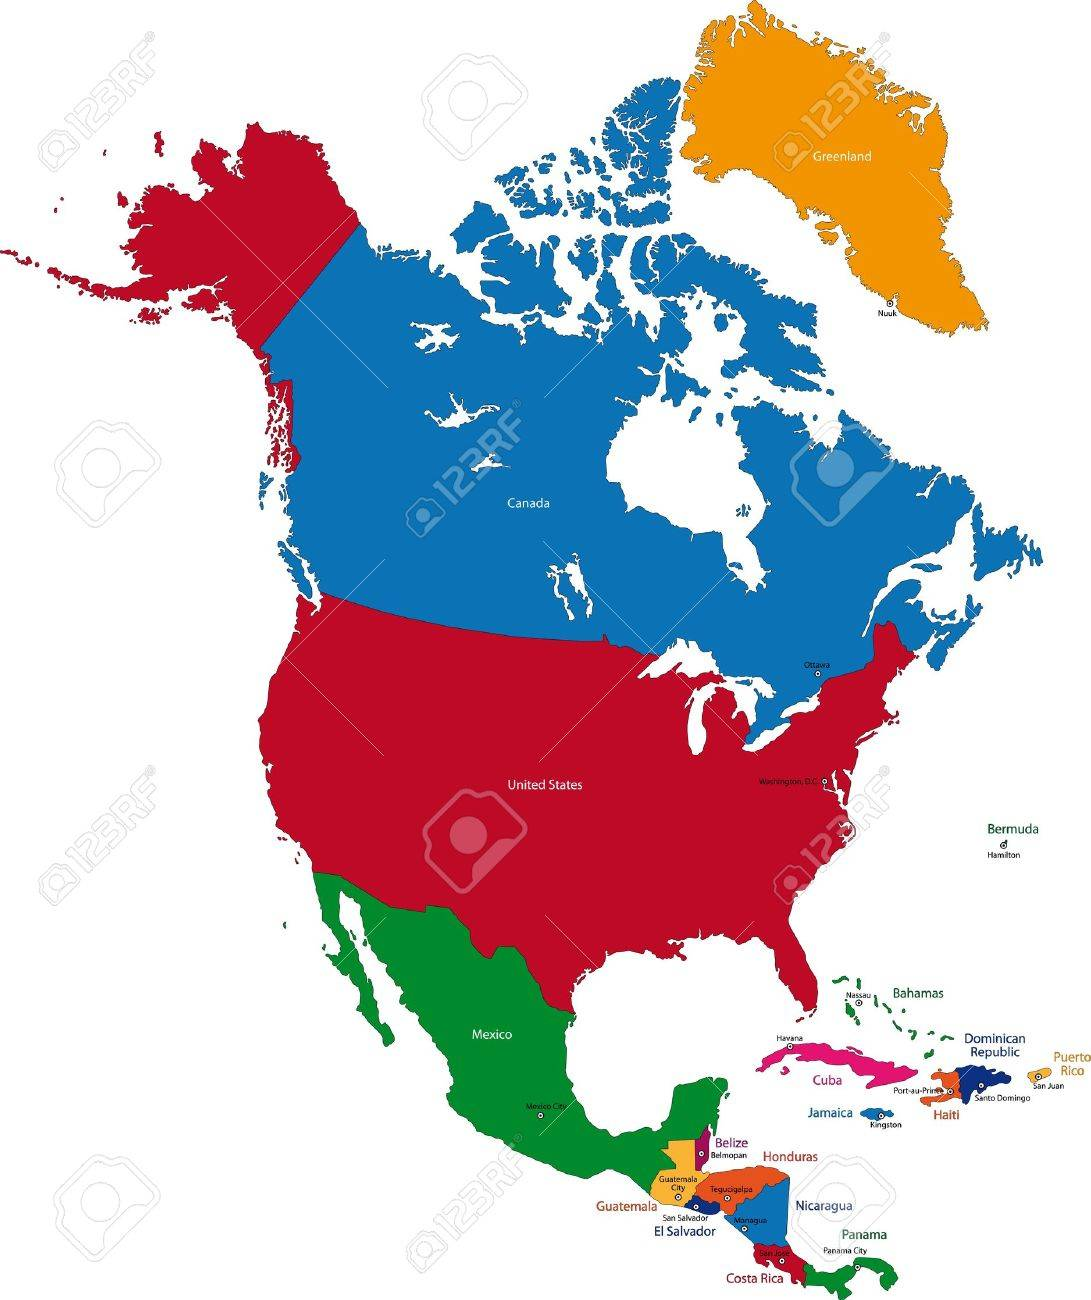 North America Map Countries And Capitals.Colorful North America Map With Countries And Capital Cities Royalty